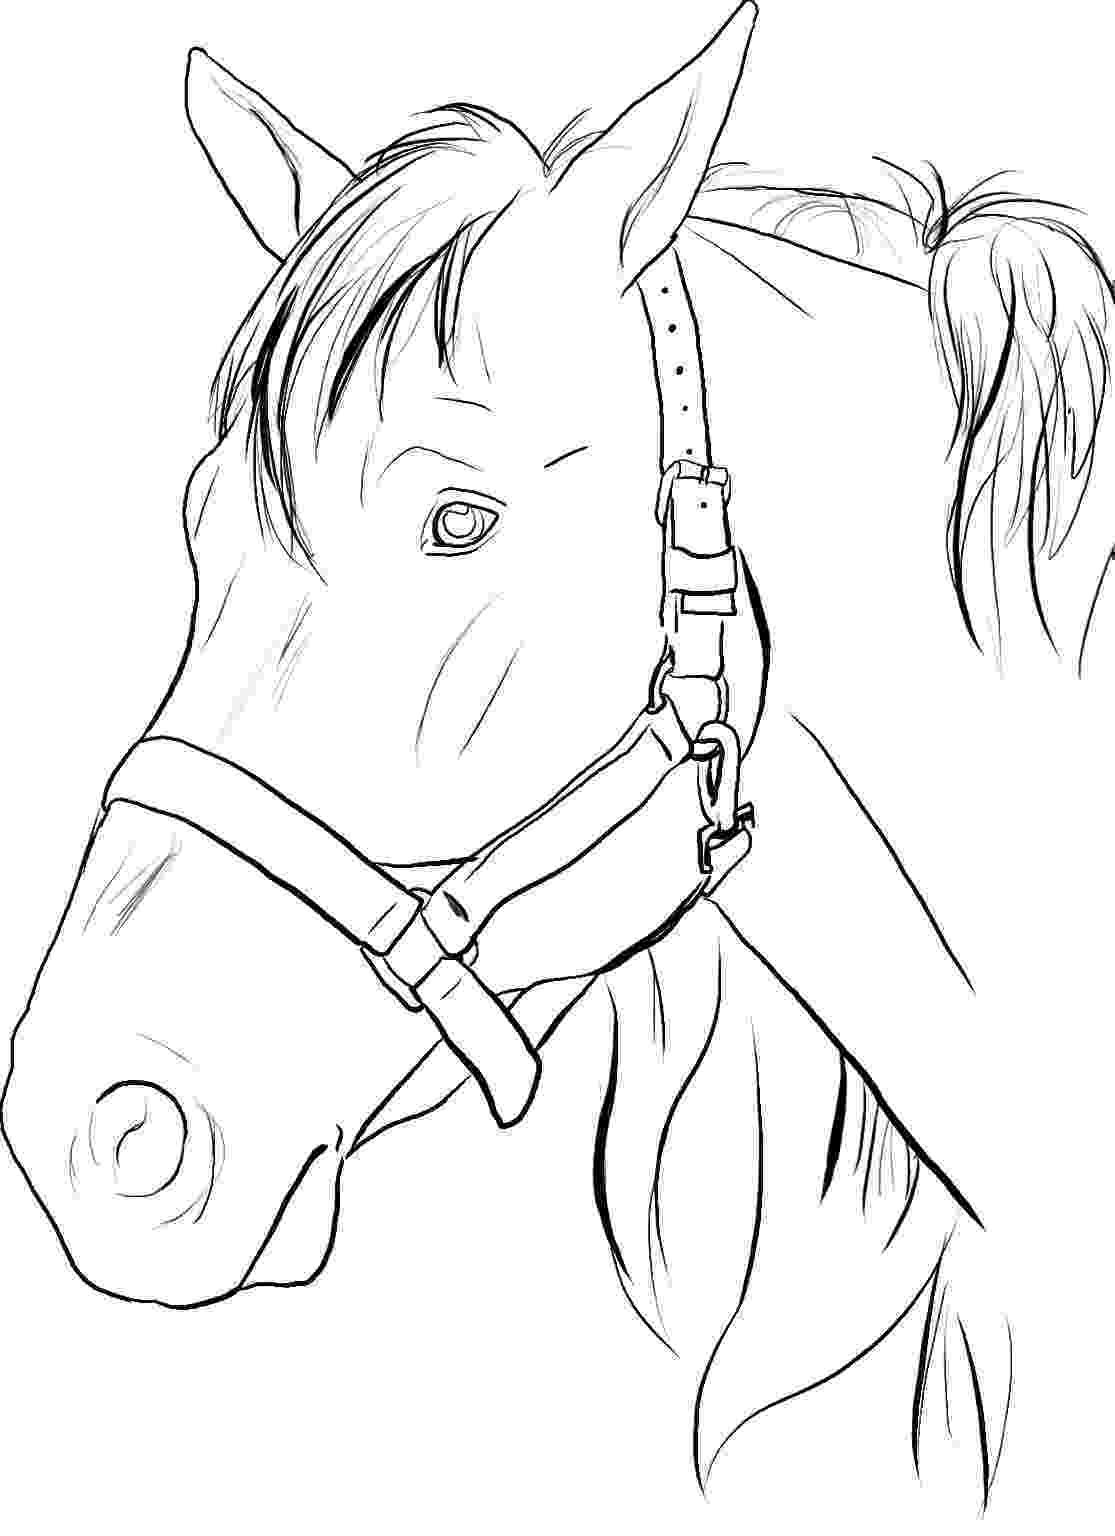 horse printables coloring pages horse head coloring pages to print google search horse coloring pages horse printables